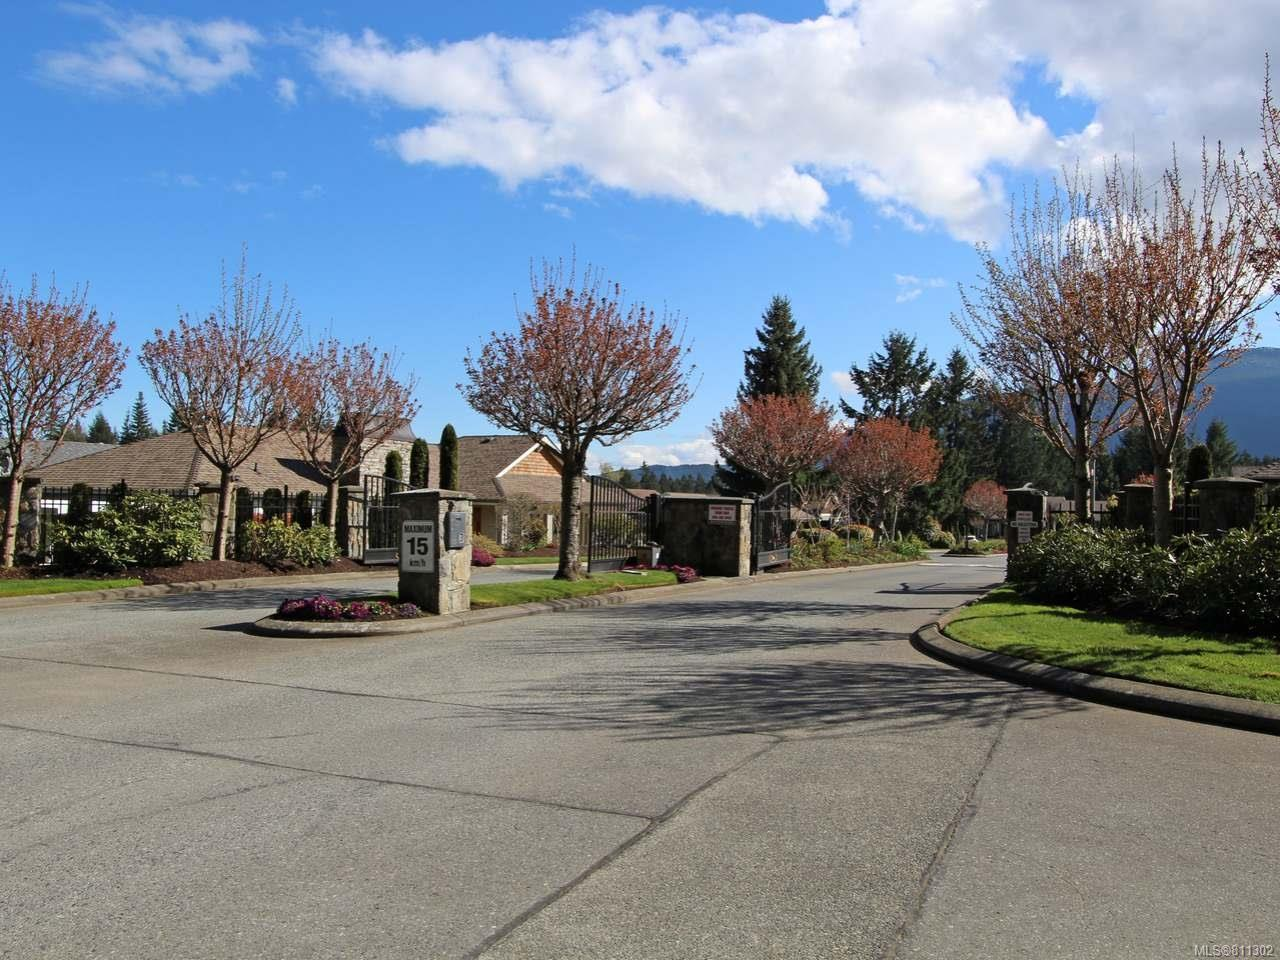 FEATURED LISTING: 69 - 3842 Maplewood Dr NANAIMO